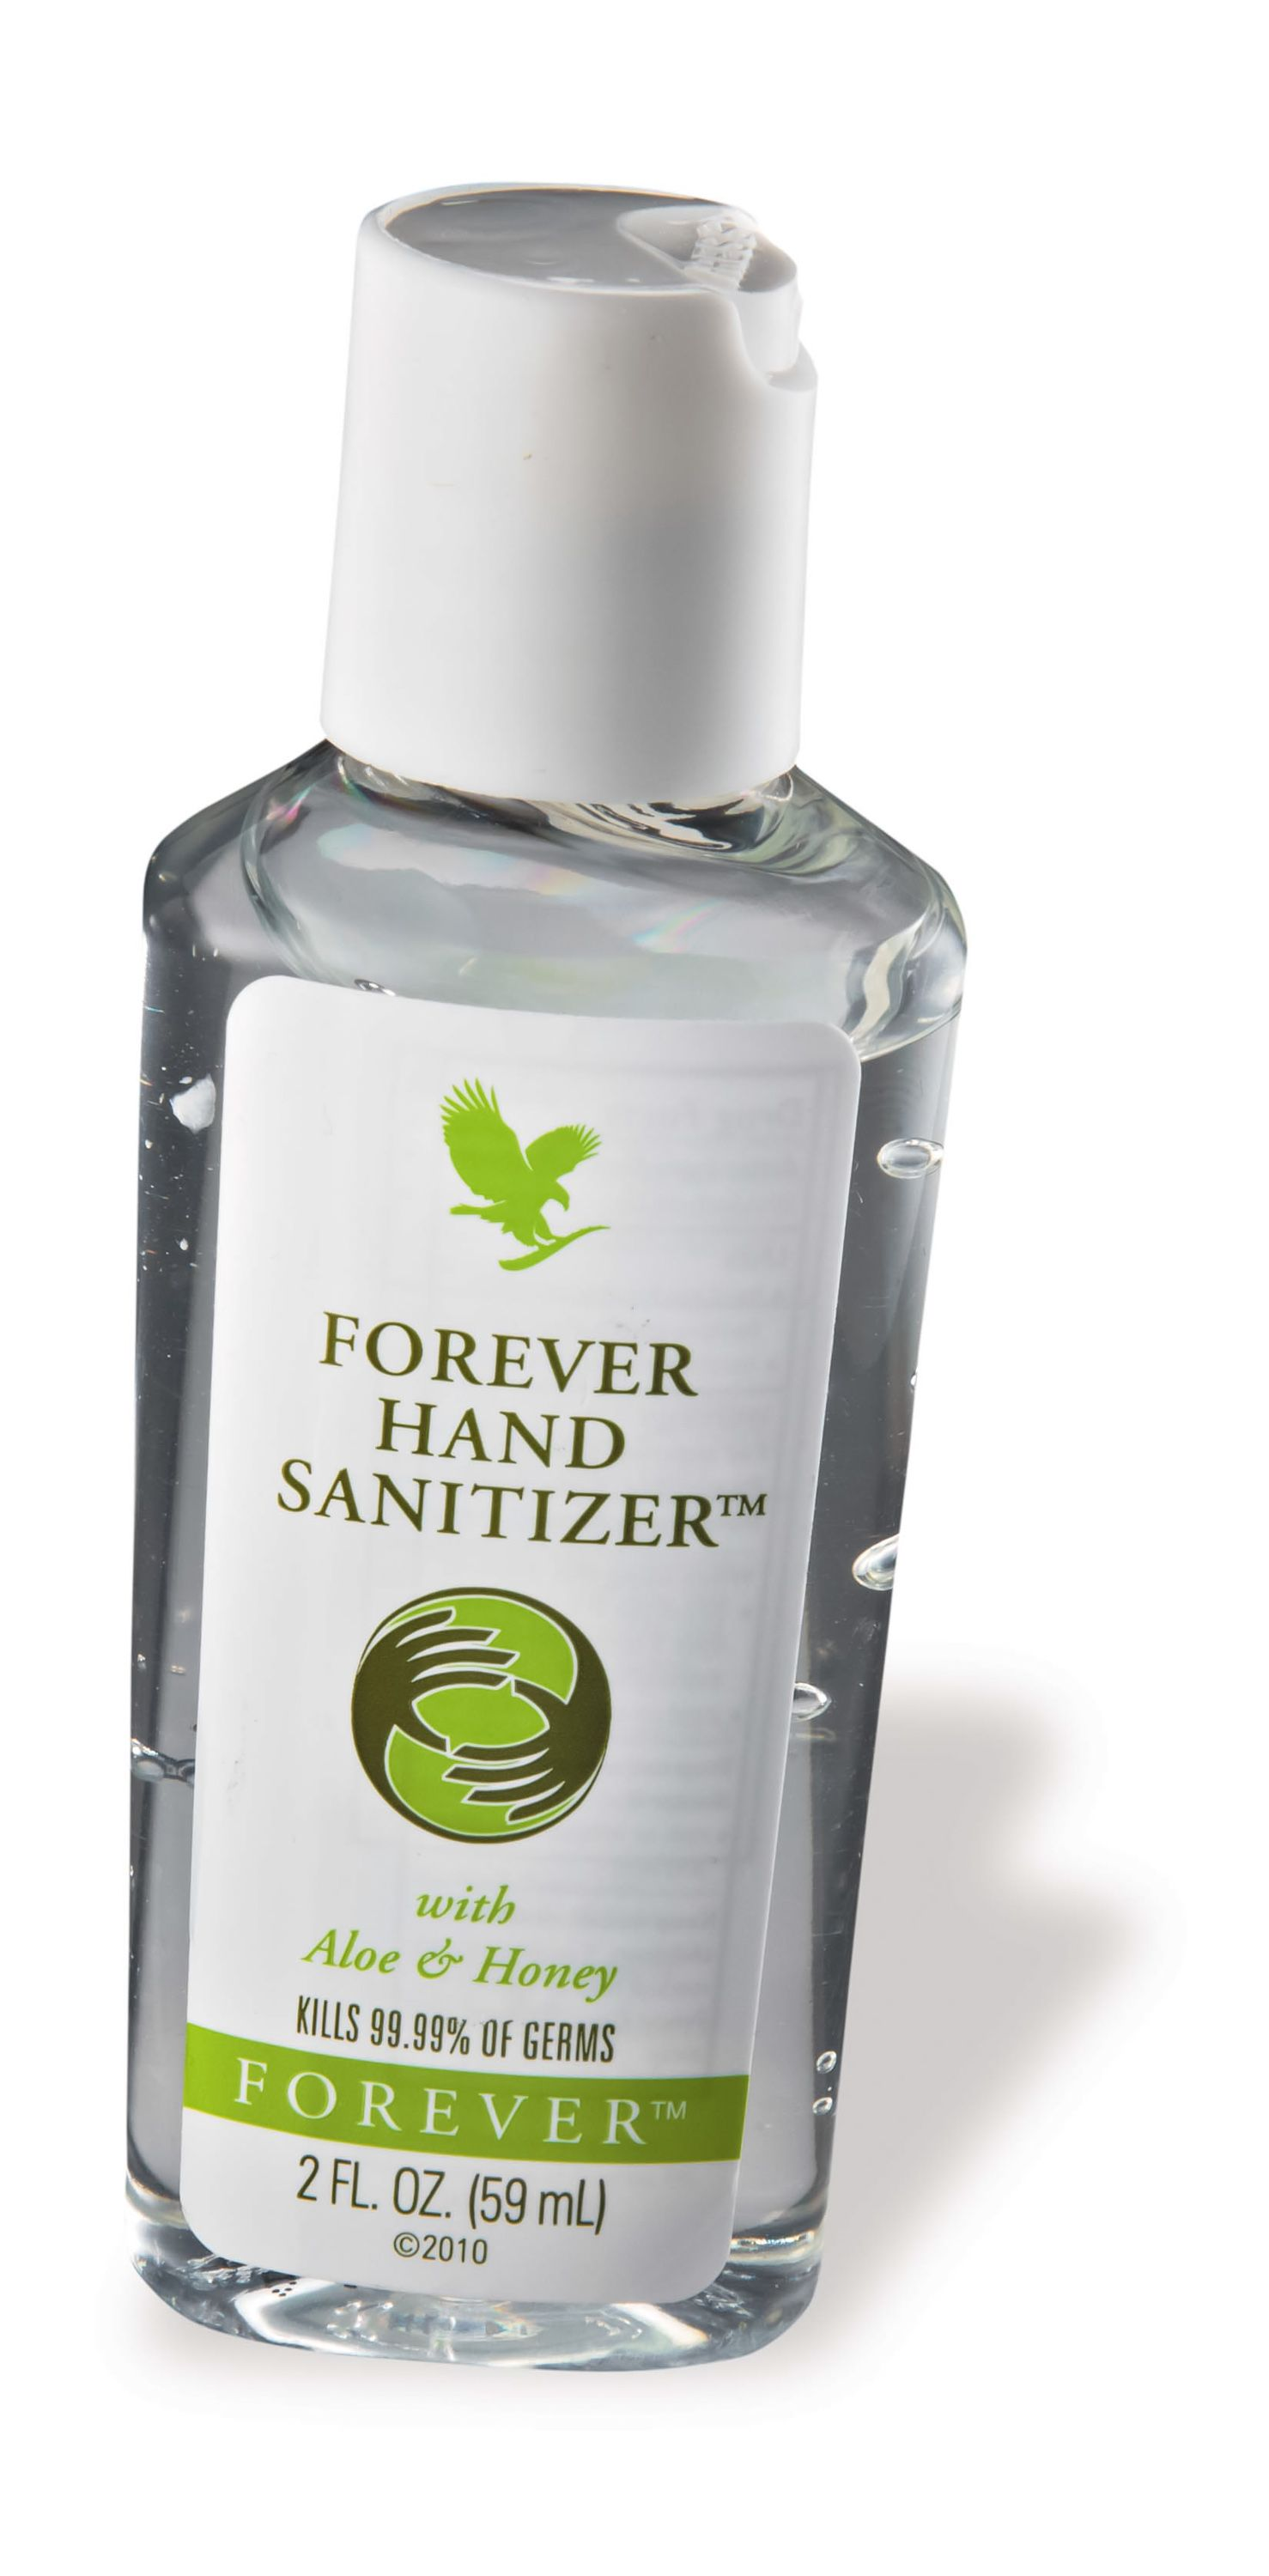 Pin By Emadur Rahman On Hand Sanitizer In 2020 Hand Sanitizer